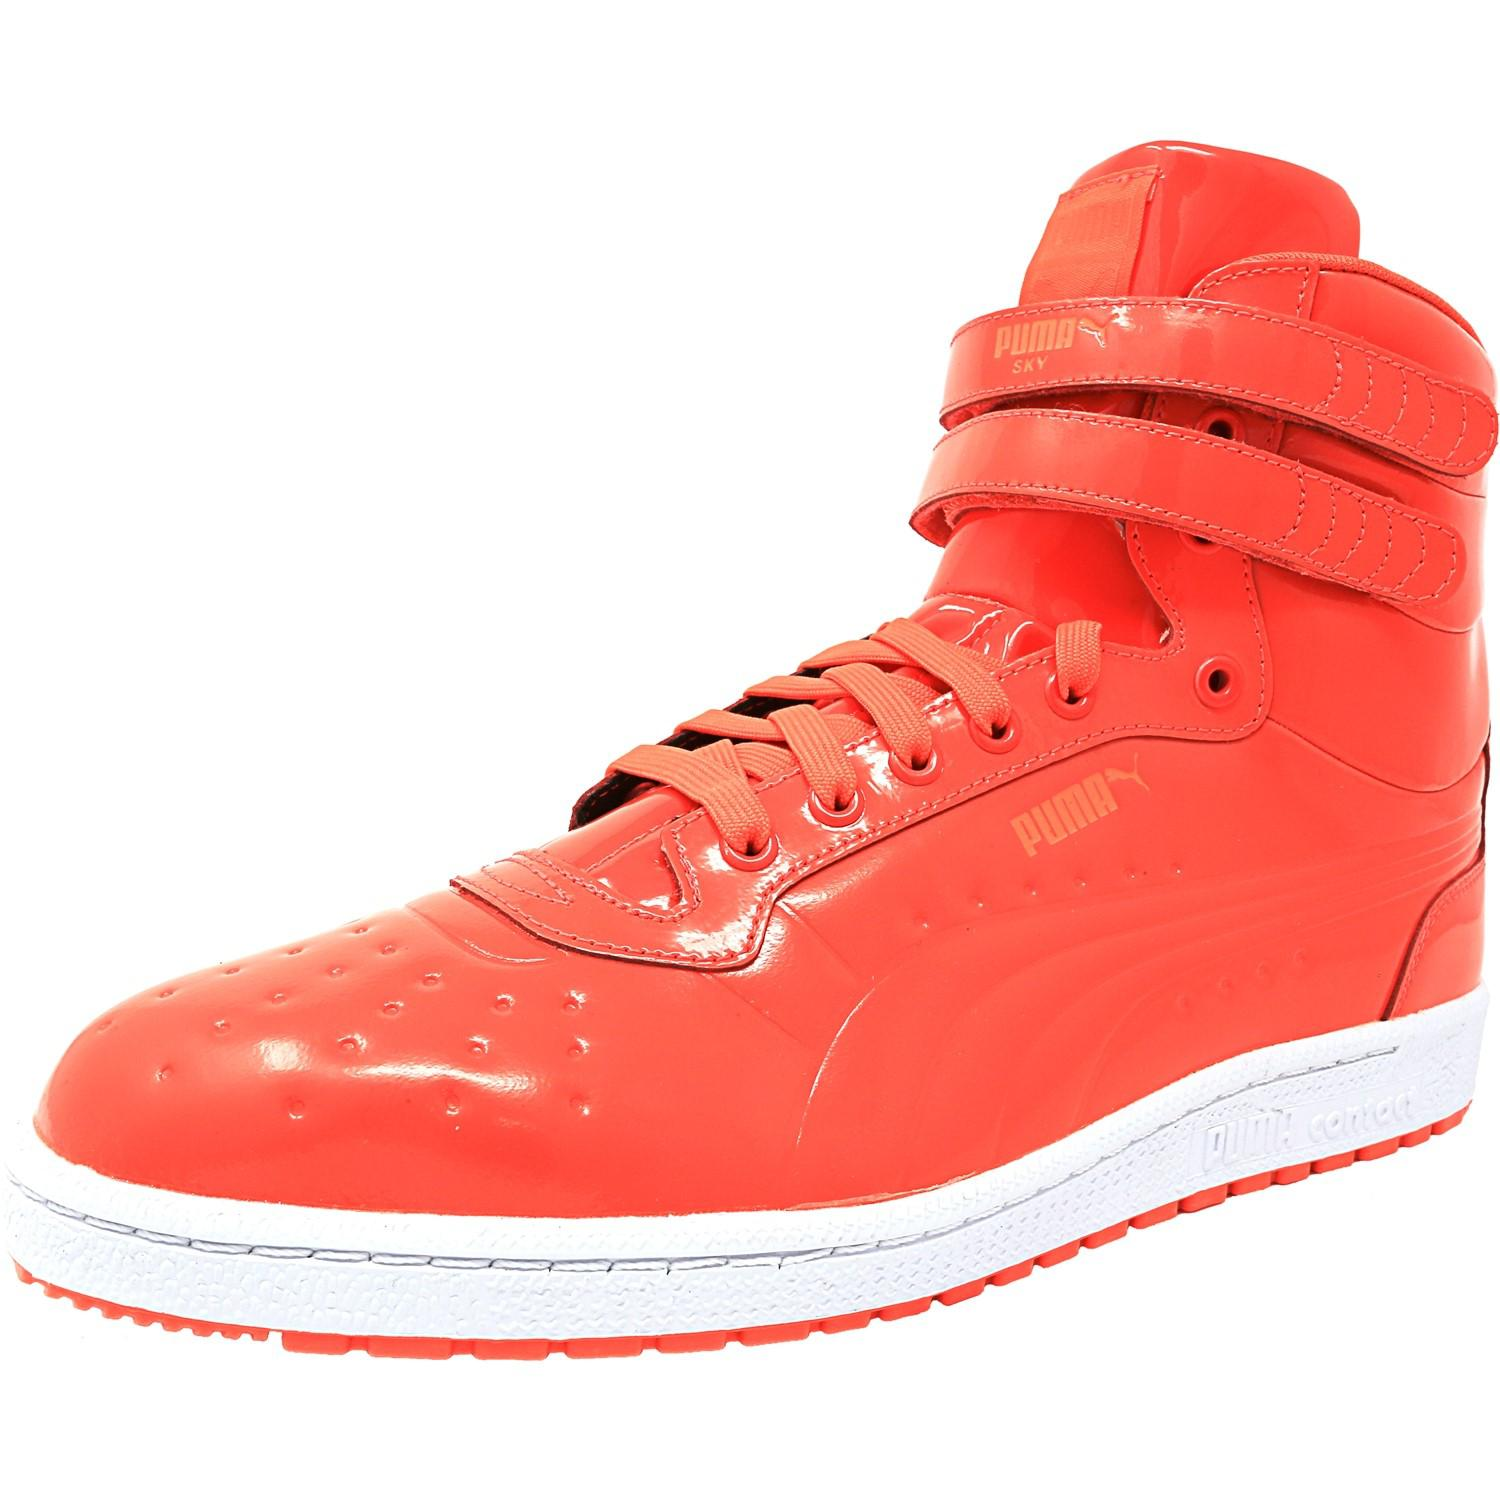 60daefc484e7 PUMA Sky Ii Hi Patent Emboss Red Blast High-top Fashion Sneaker in ...